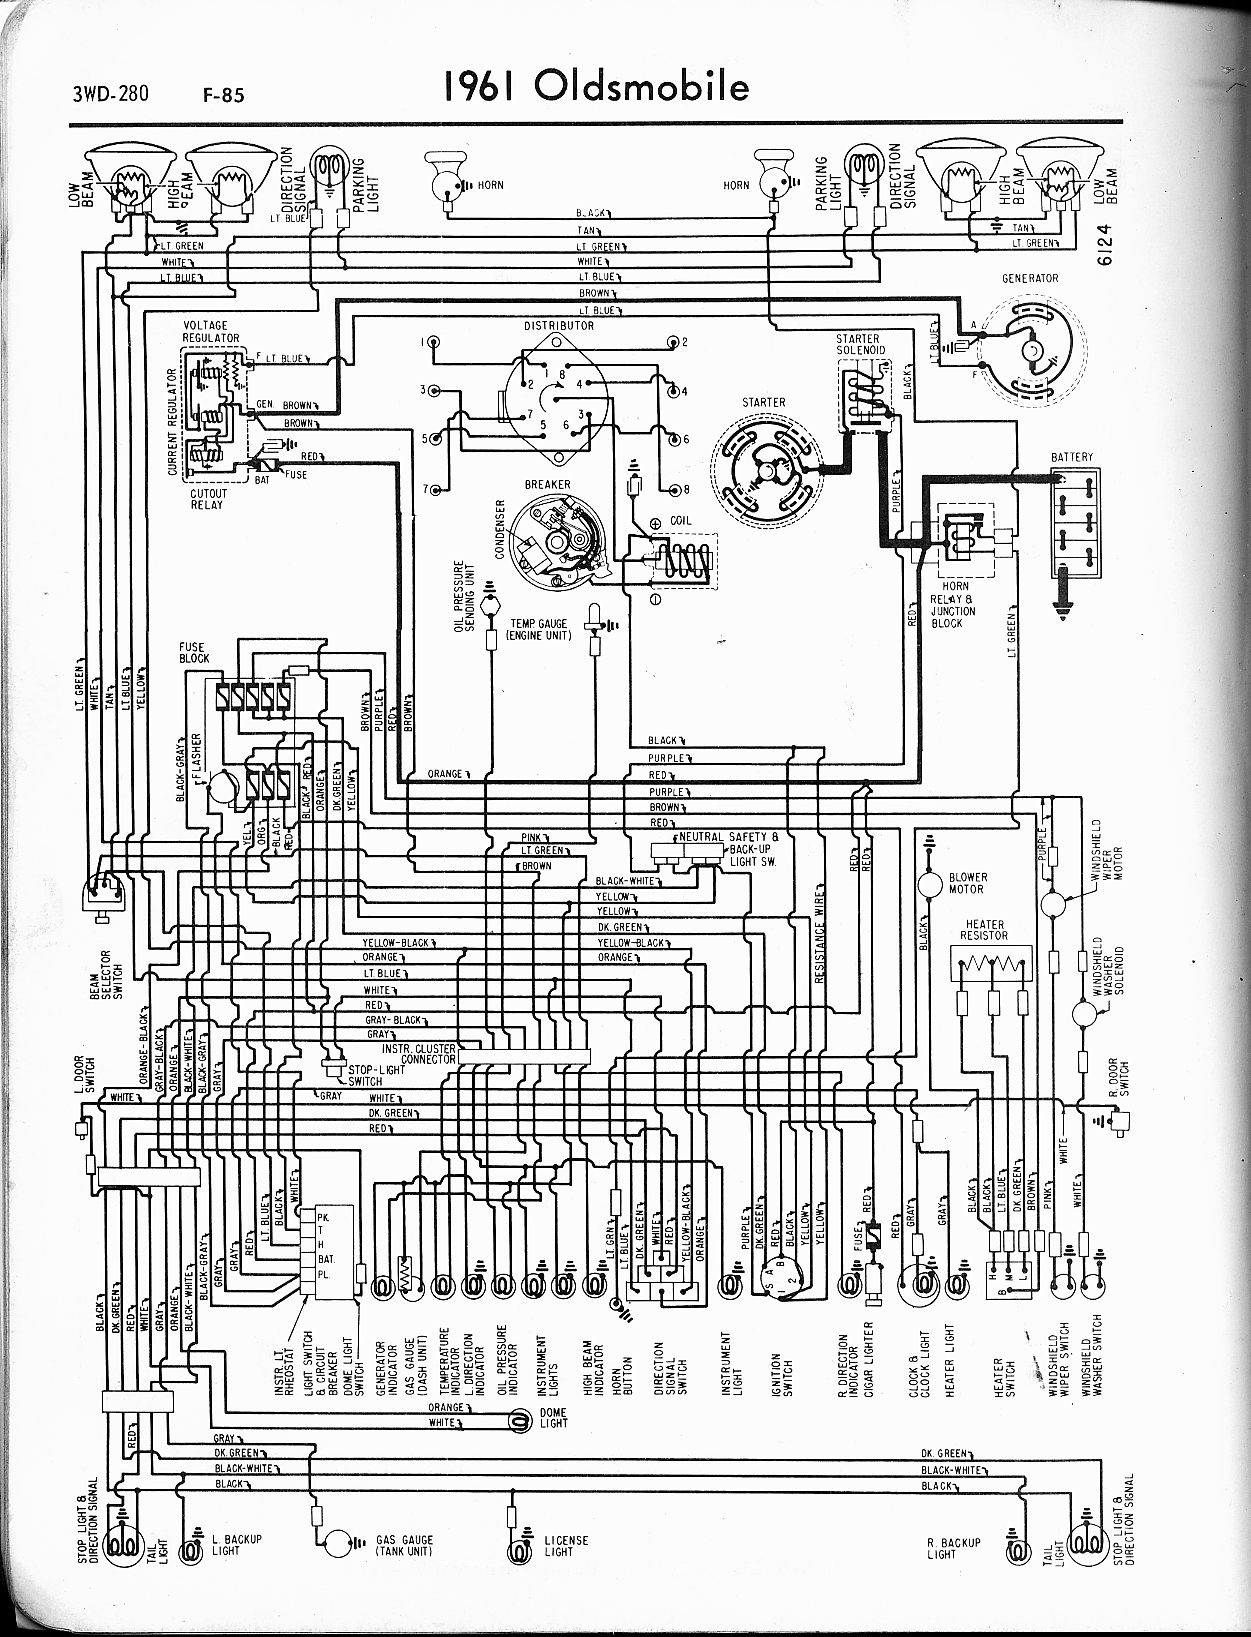 MWire5765 280 oldsmobile wiring diagrams the old car manual project Oldsmobile Aurora Power Steering Line at mifinder.co